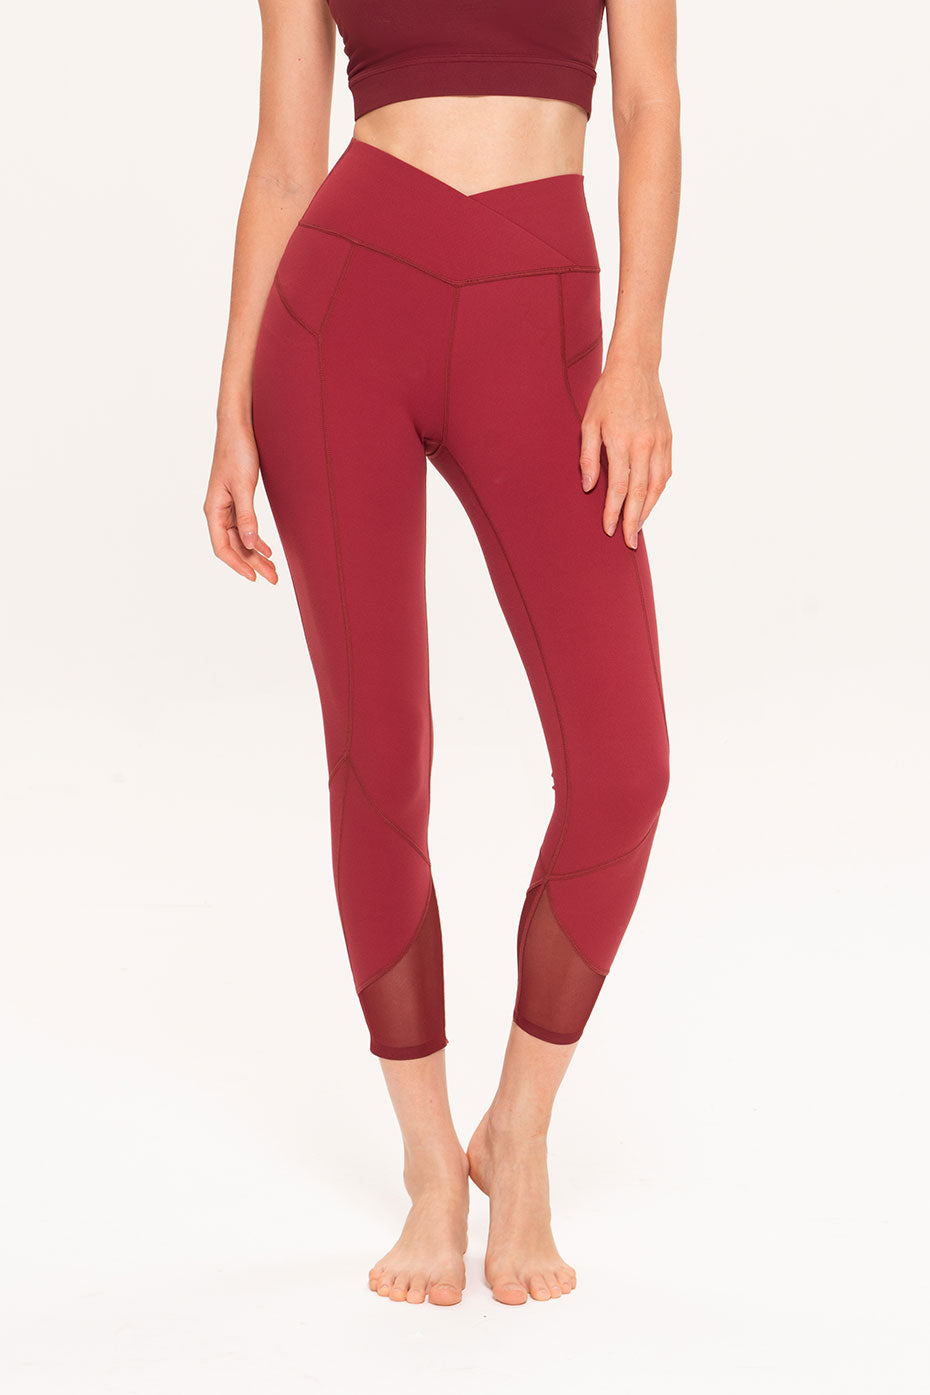 7/8 High-Waist Jubilant Legging